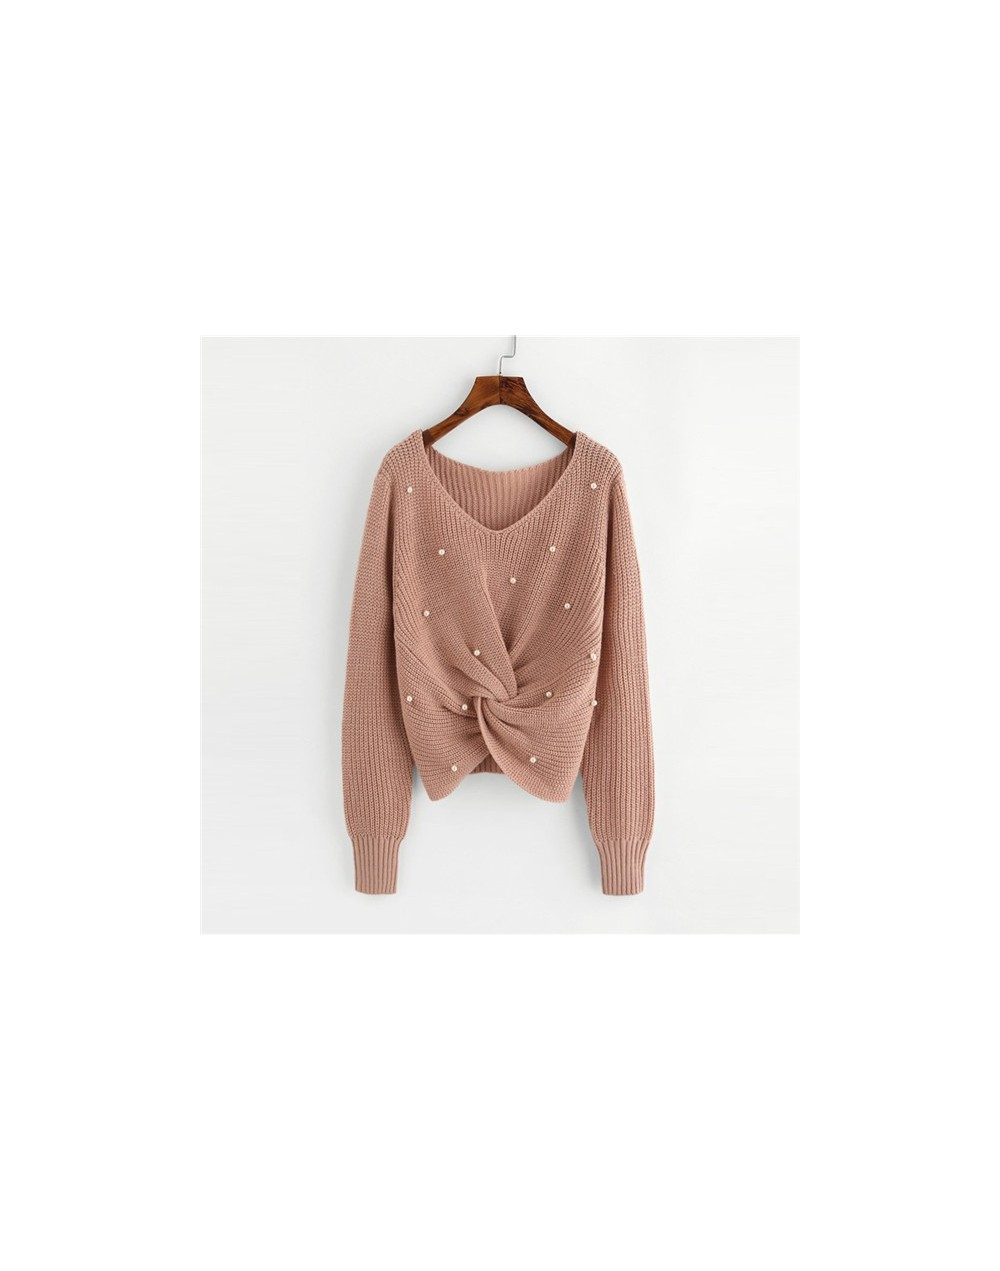 Plain V Neck Pearl Beading Casual Sweater Long Sleeve Detail Twist Knitted Sweater Fall Winter Tops For Women Pollover - Pin...